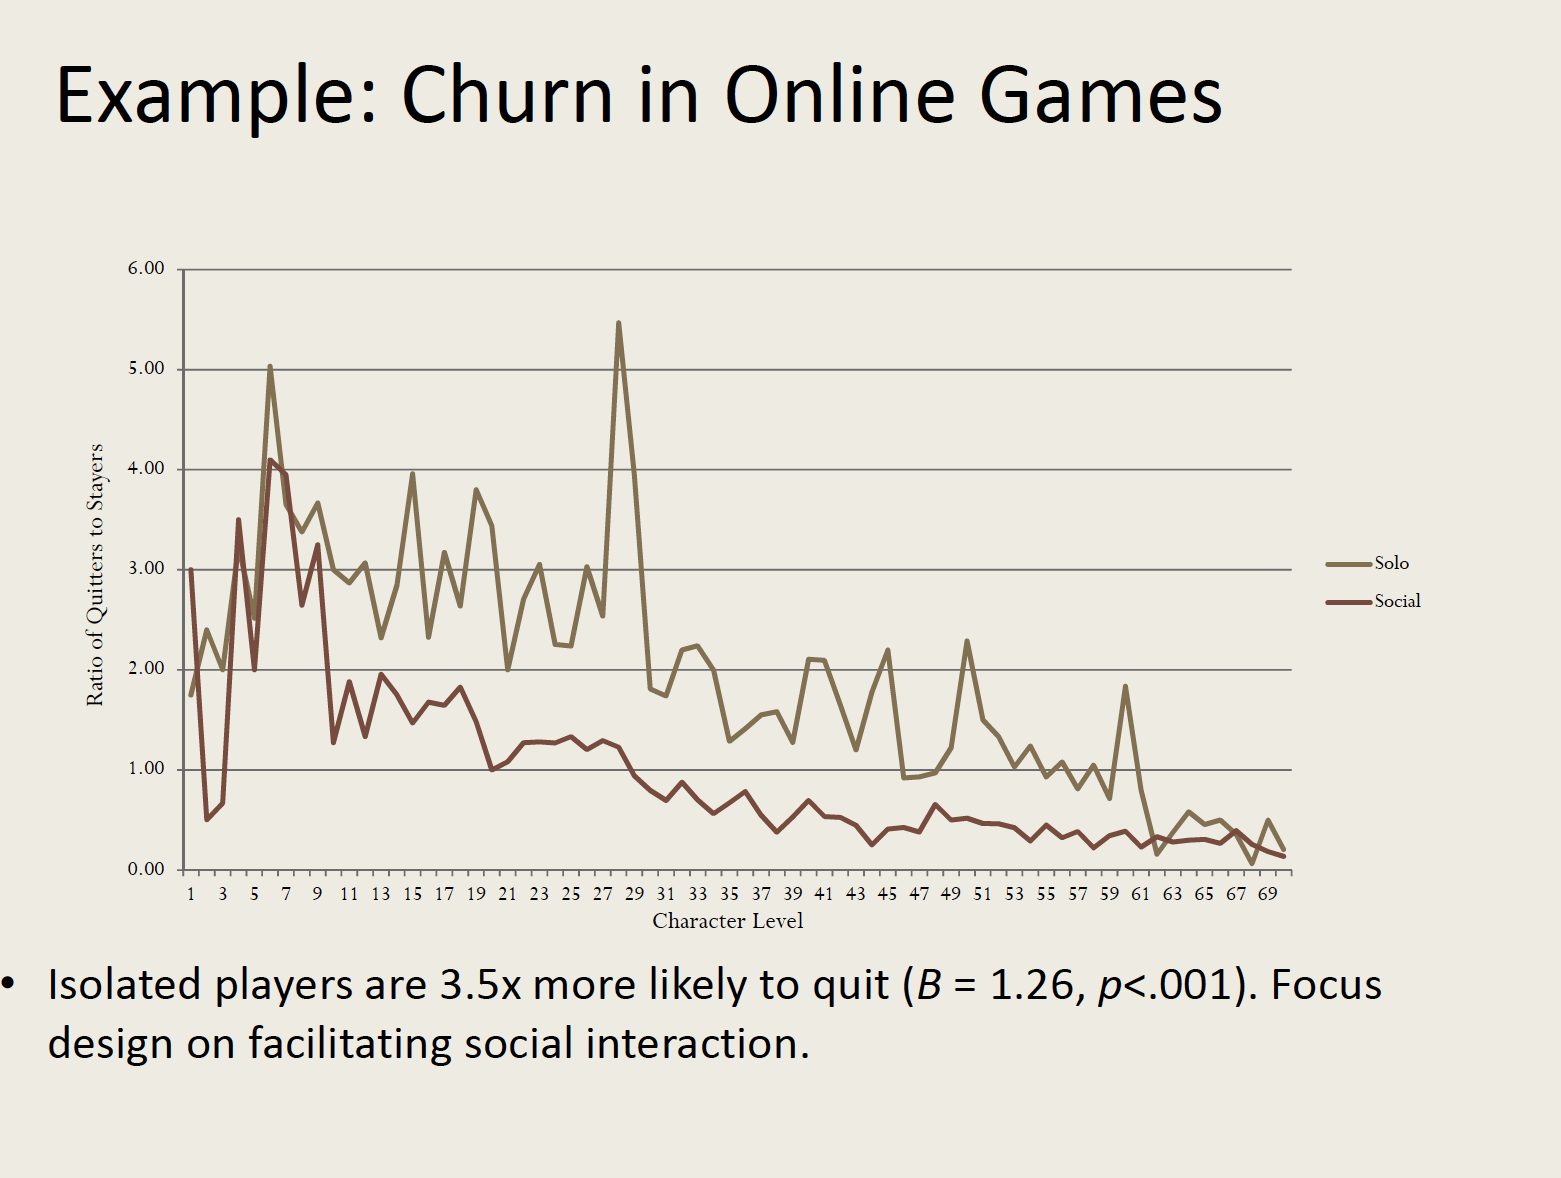 Churn in online games